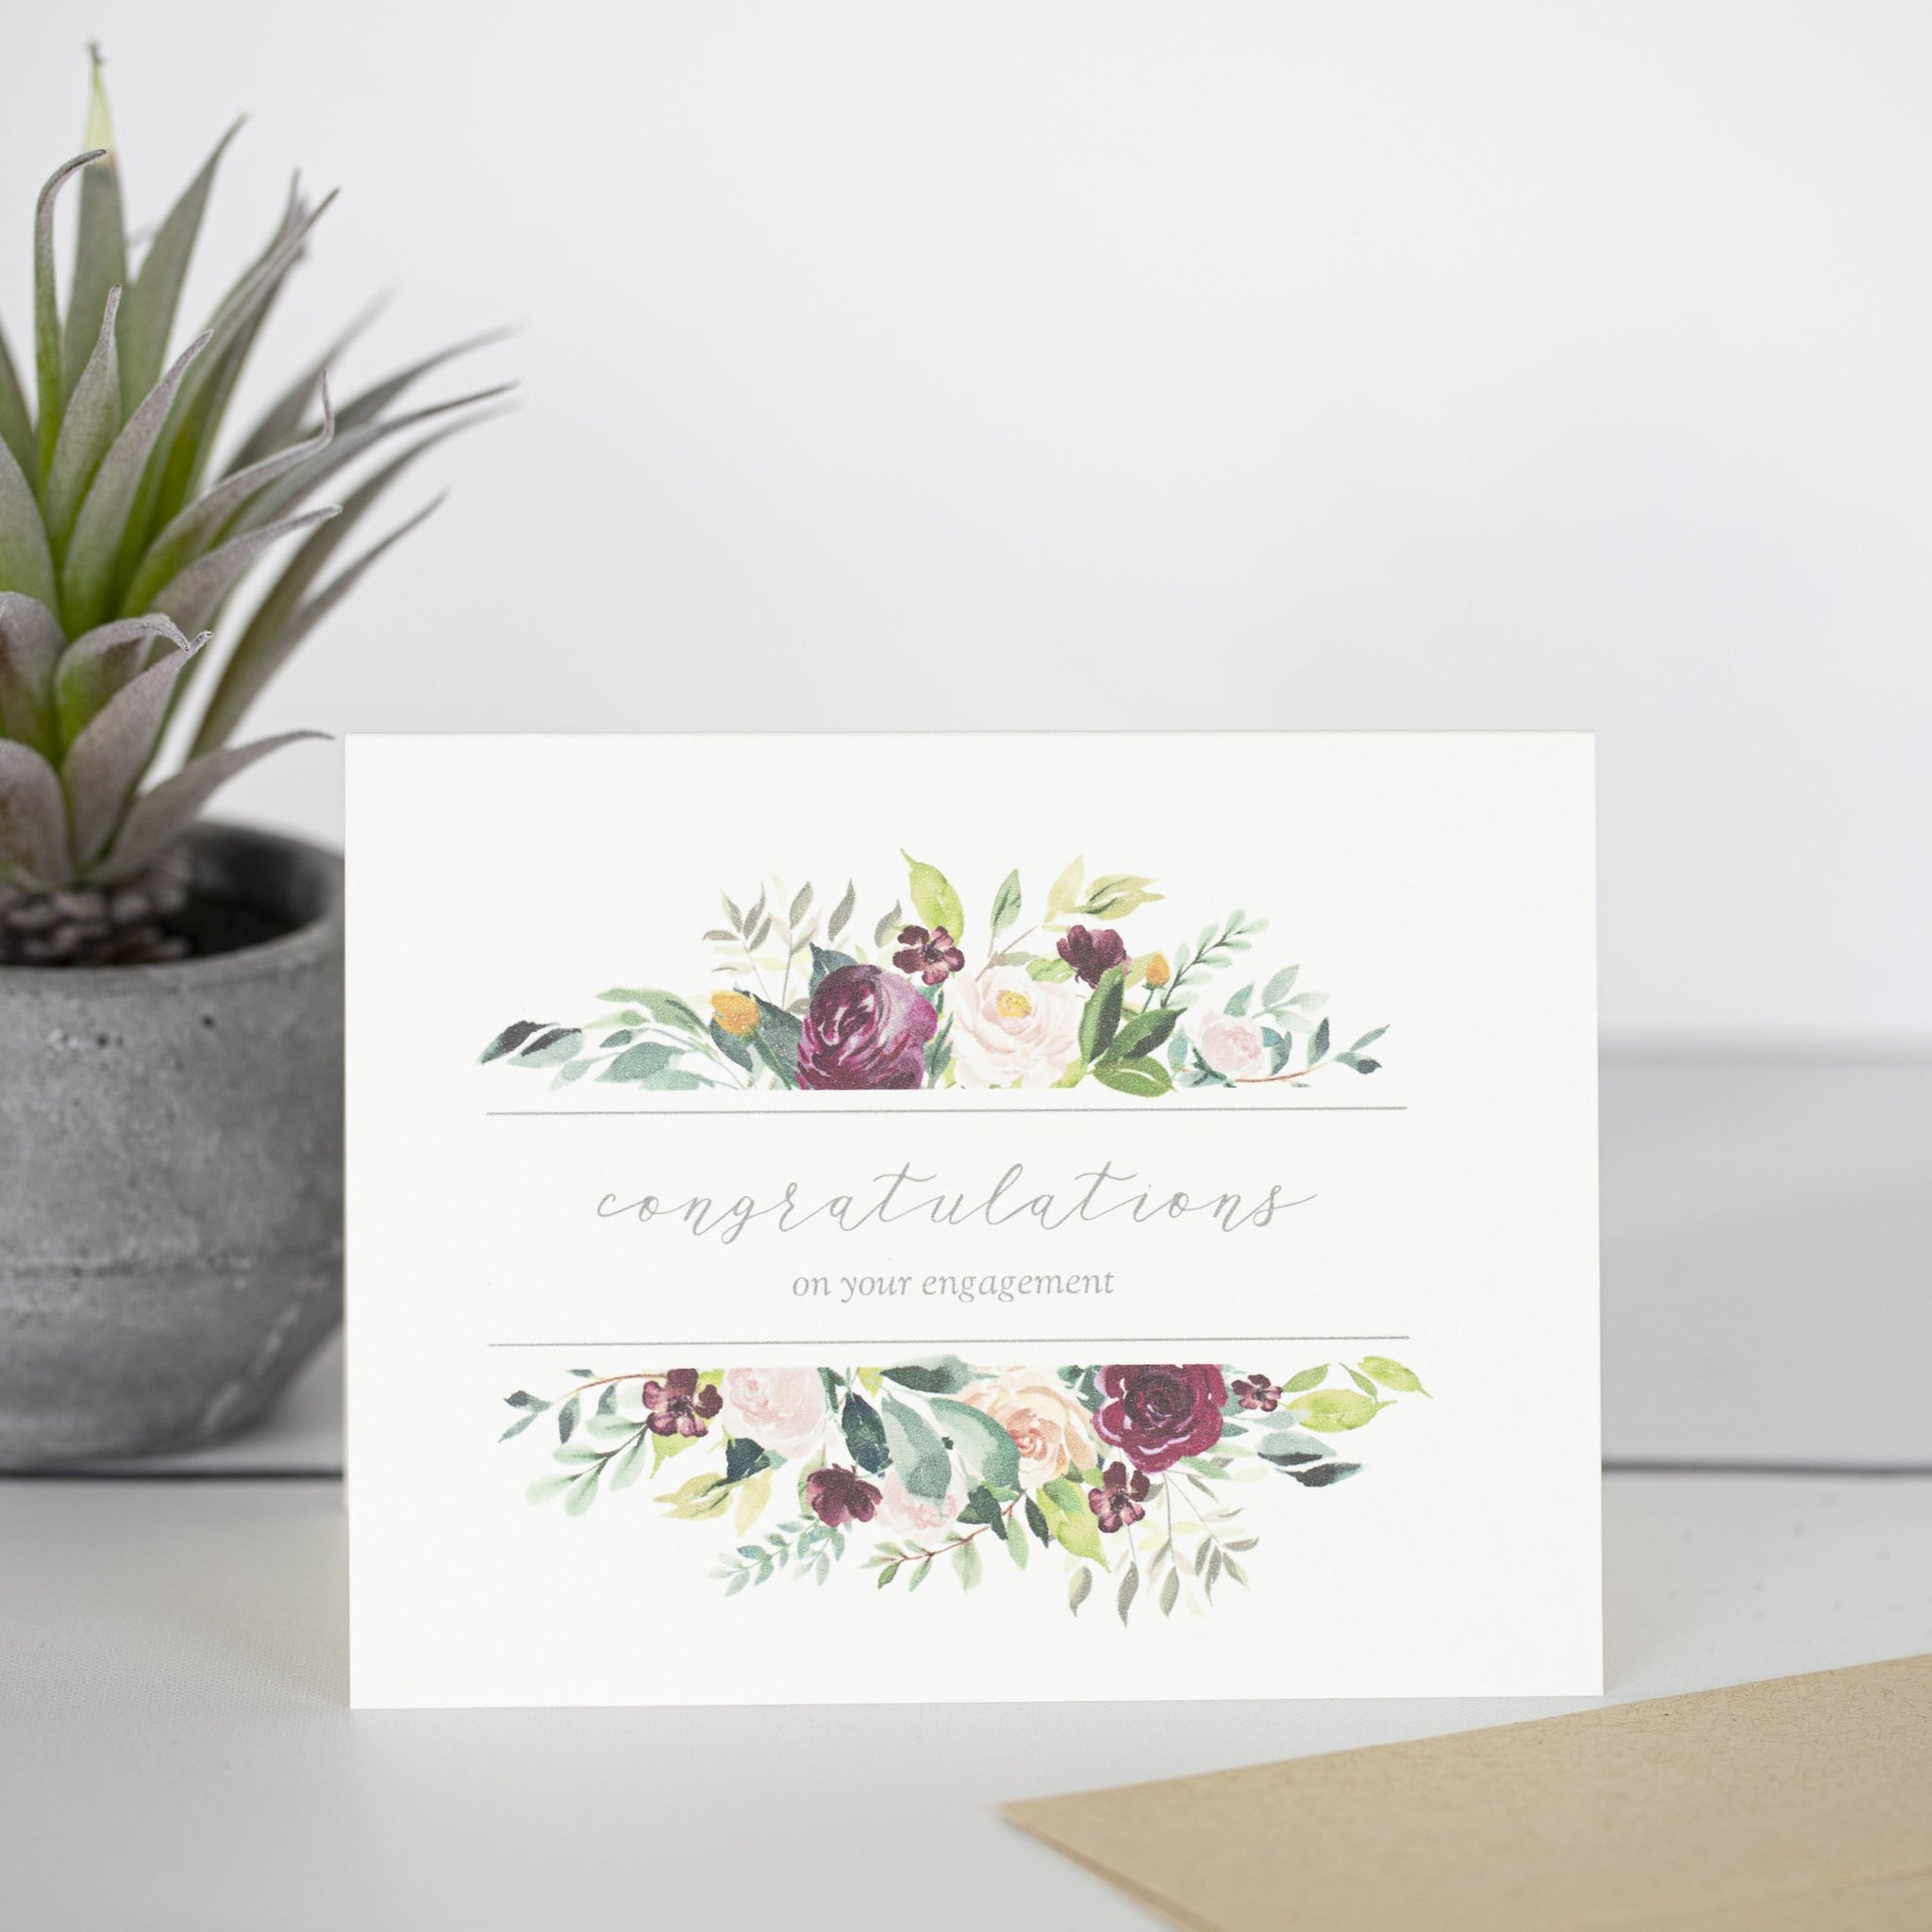 Congratulations On Your Engagement Greeting Card by Driven To Ink